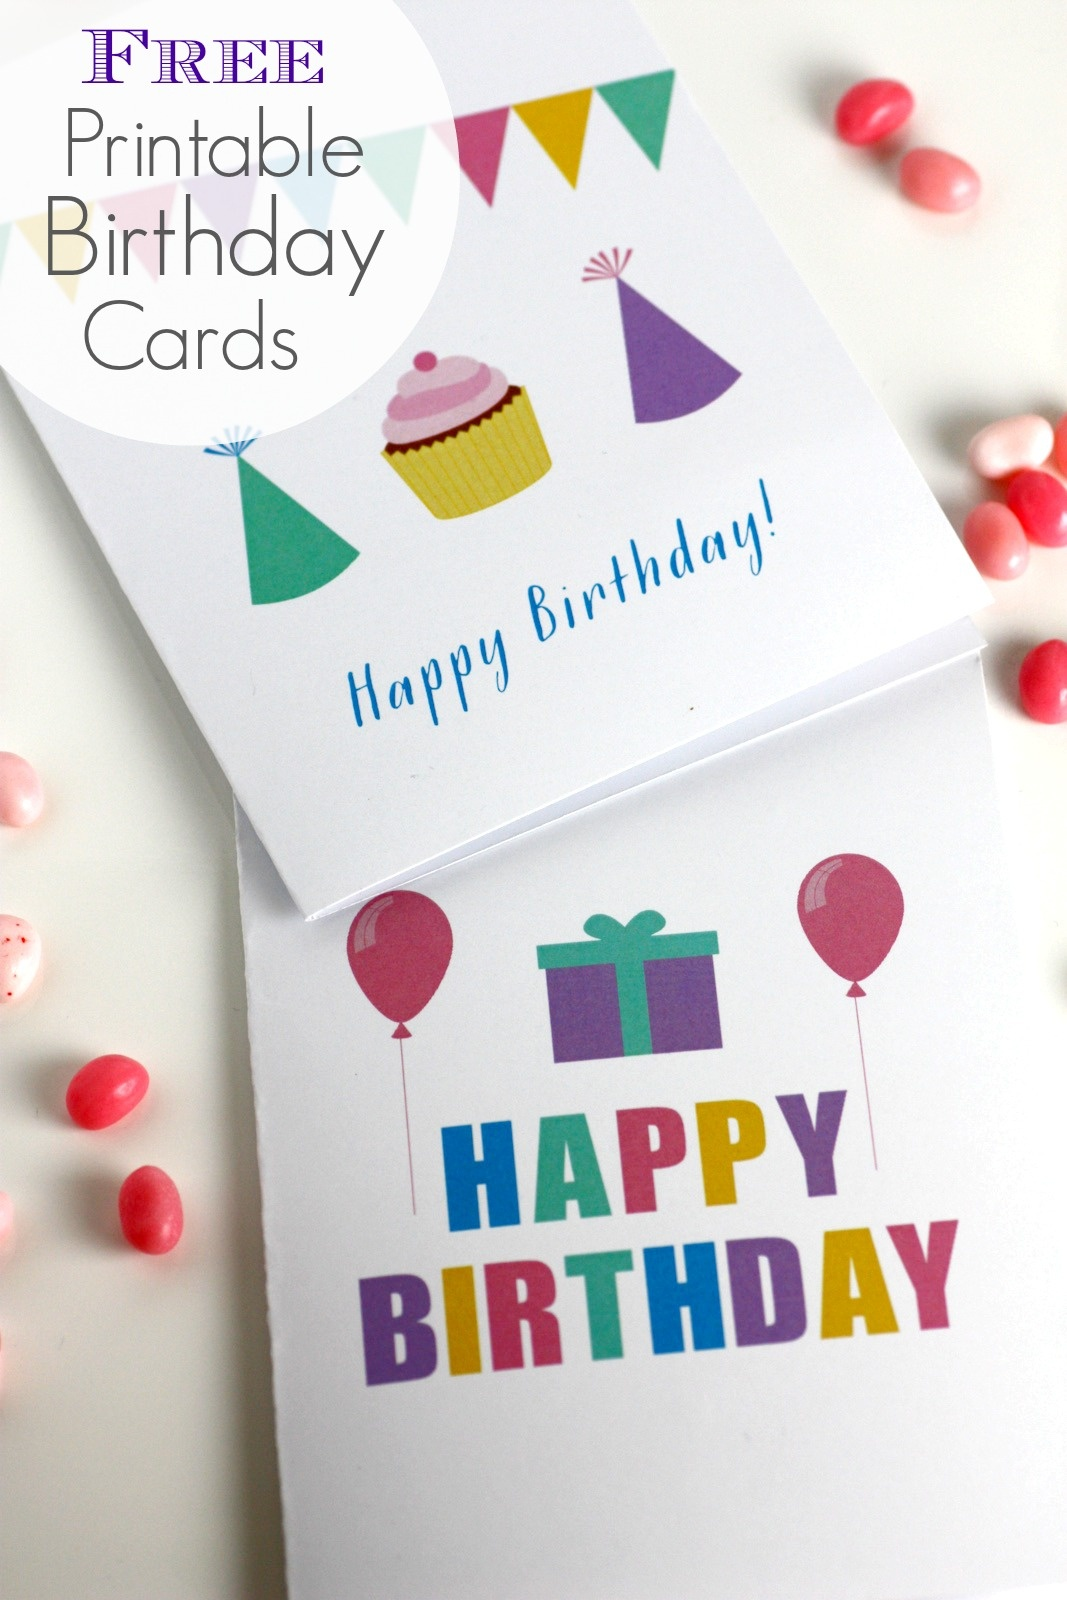 Free Printable Blank Birthday Cards | Catch My Party - Free Printable Happy Birthday Cards